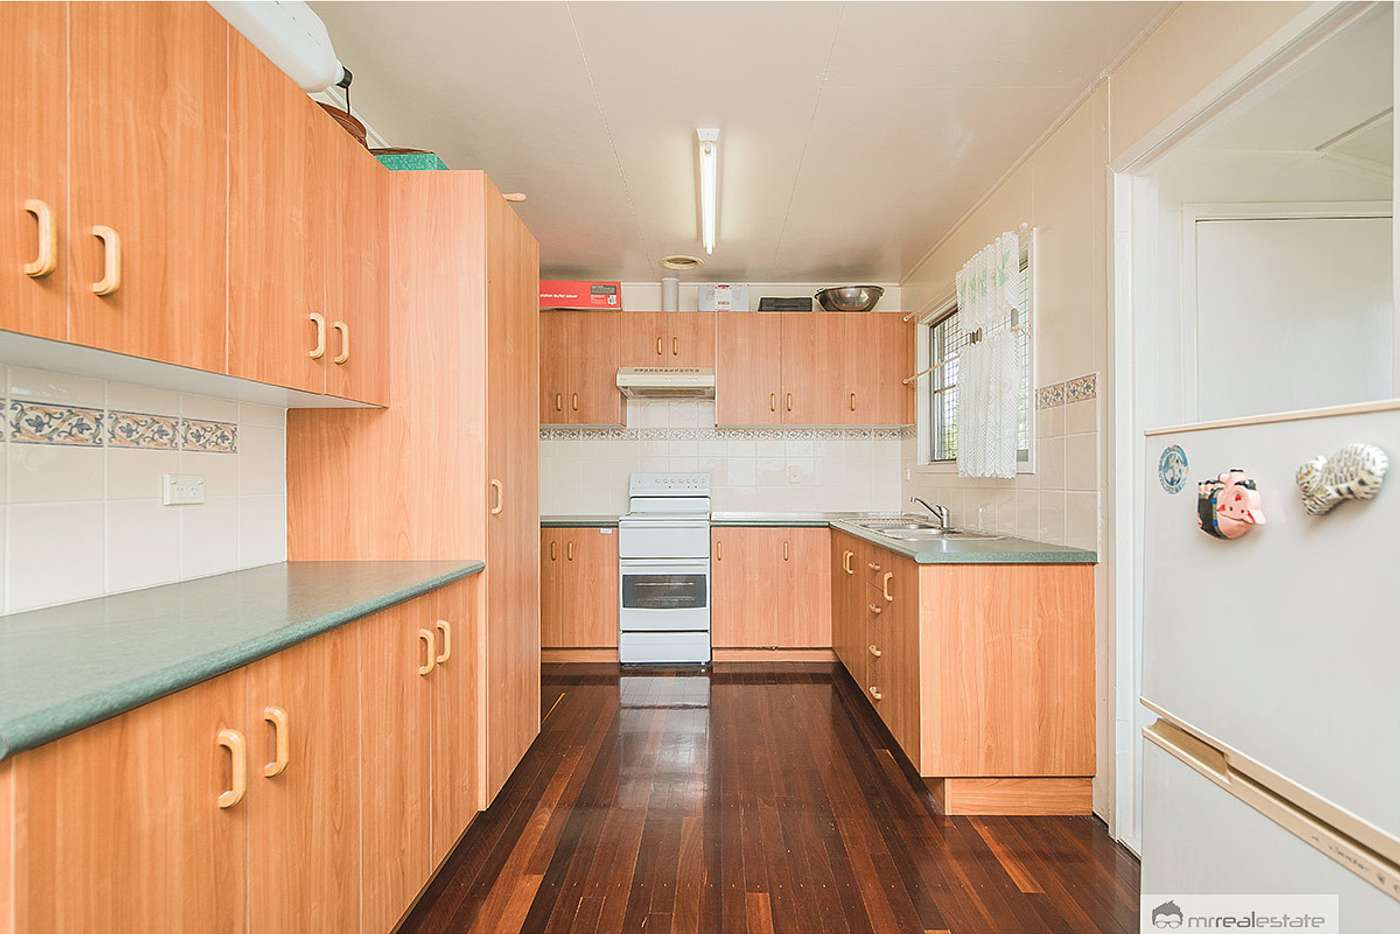 Fifth view of Homely house listing, 174 High Street, Berserker QLD 4701